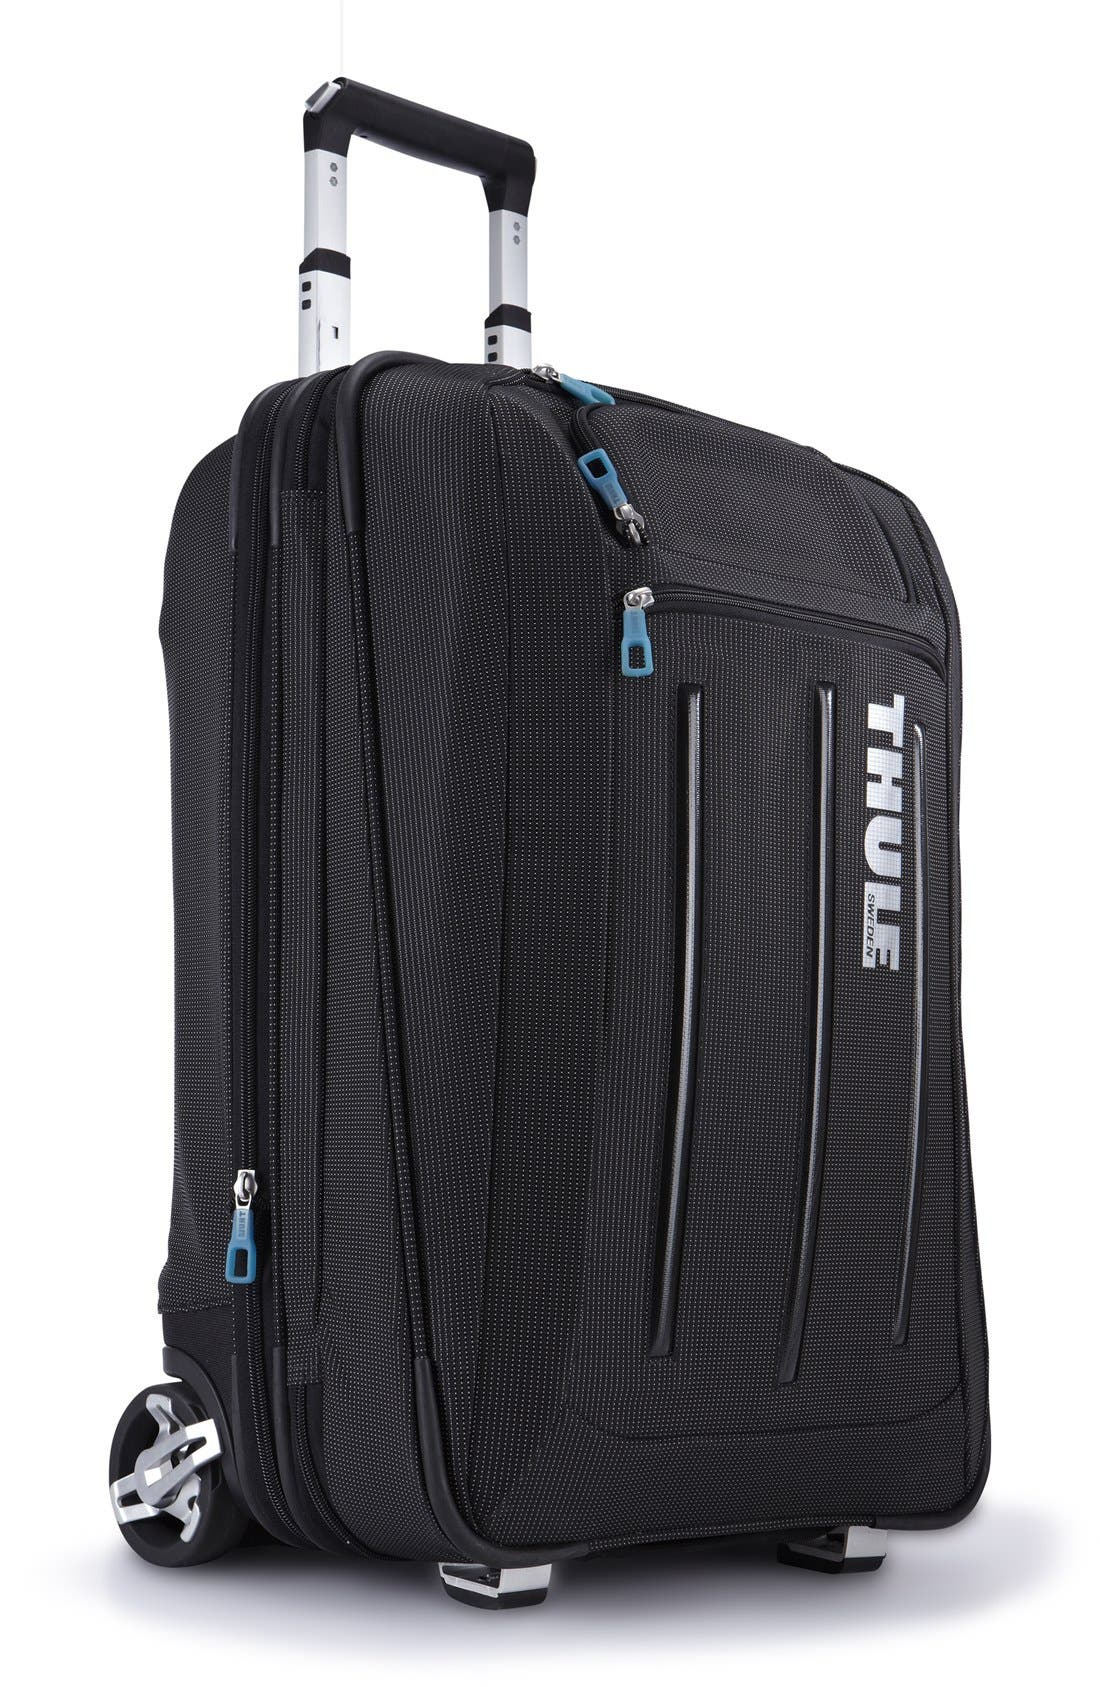 Thule 'Crossover' Rolling Carry-On with Garment Bag (22 inch)